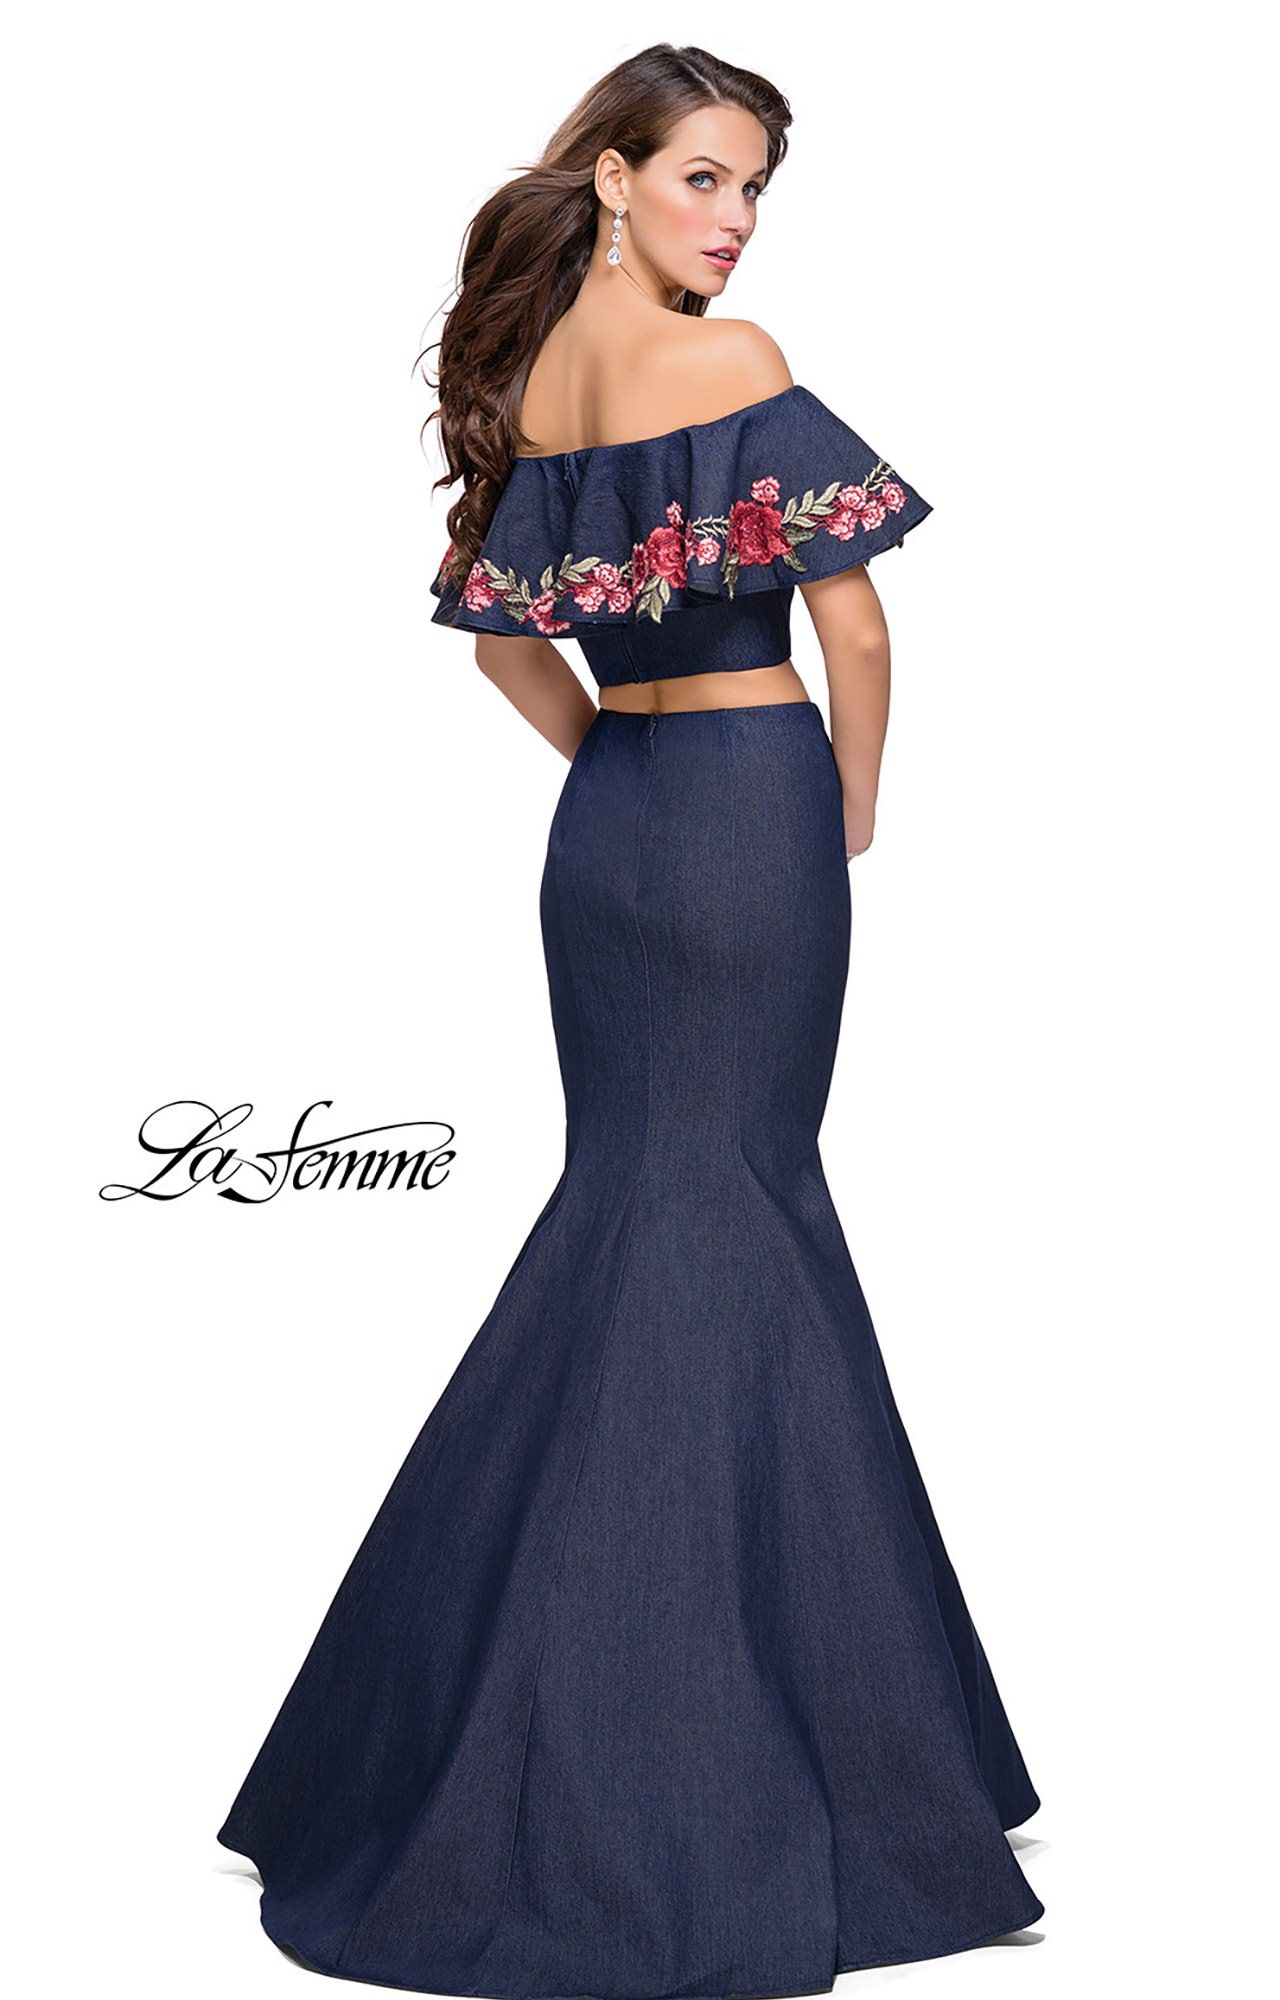 La Femme 26013 2 Piece Off The Shoulder Denim Prom Dress